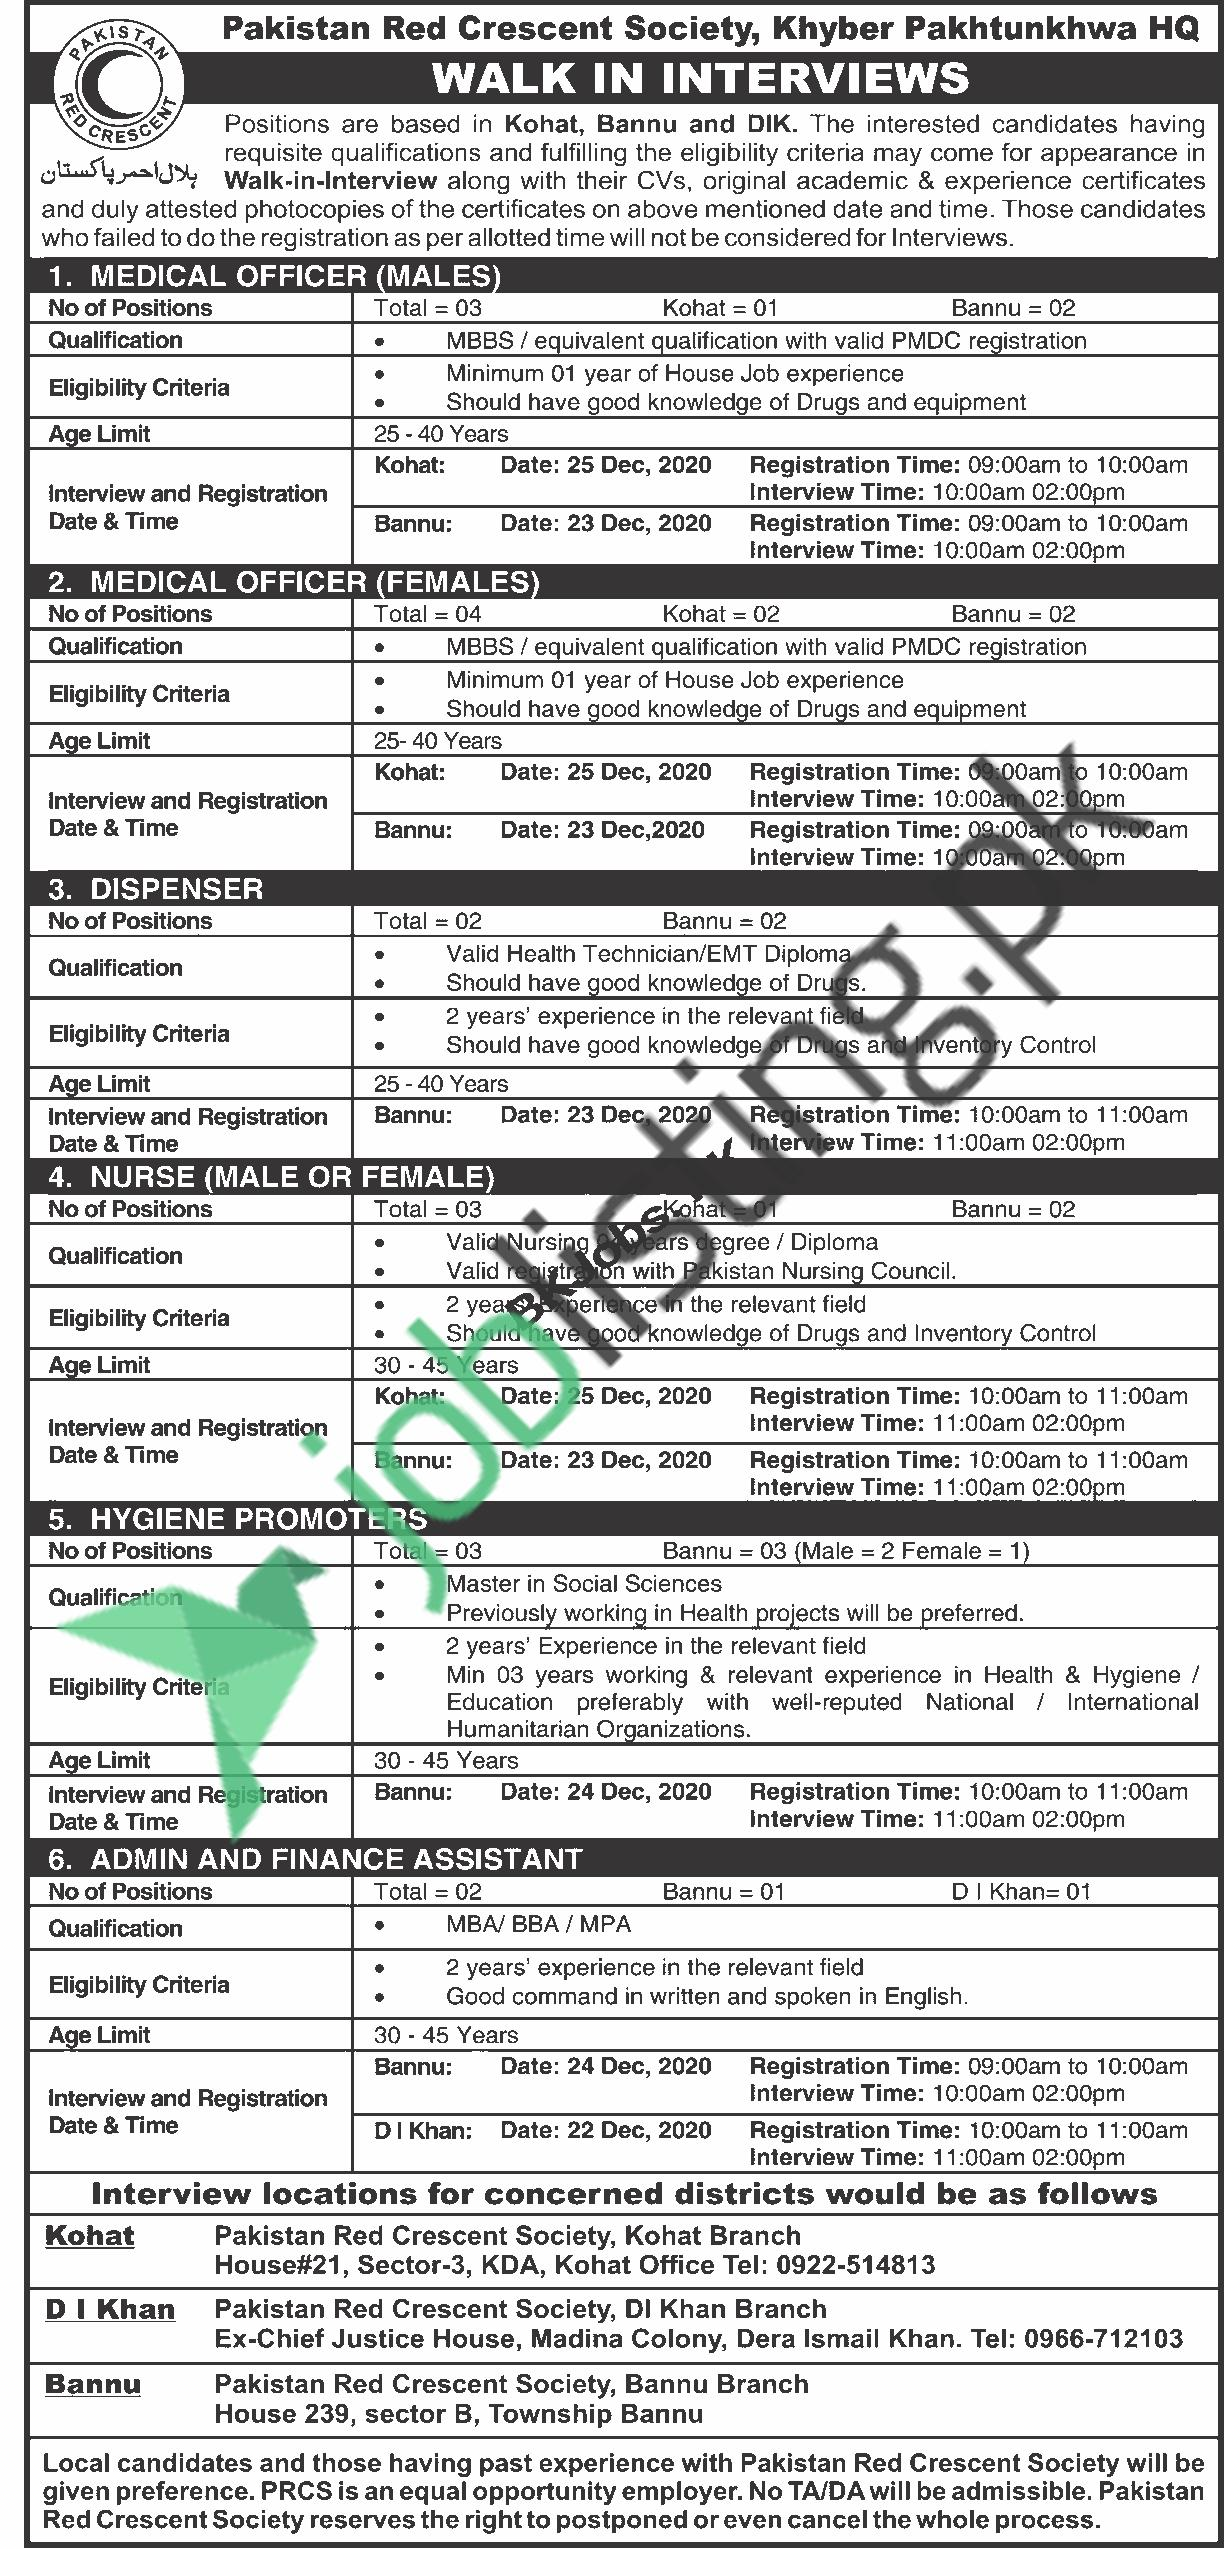 Pakistan Red Crescent Society, Khyber Pakhtunkhwa walk-in-interview